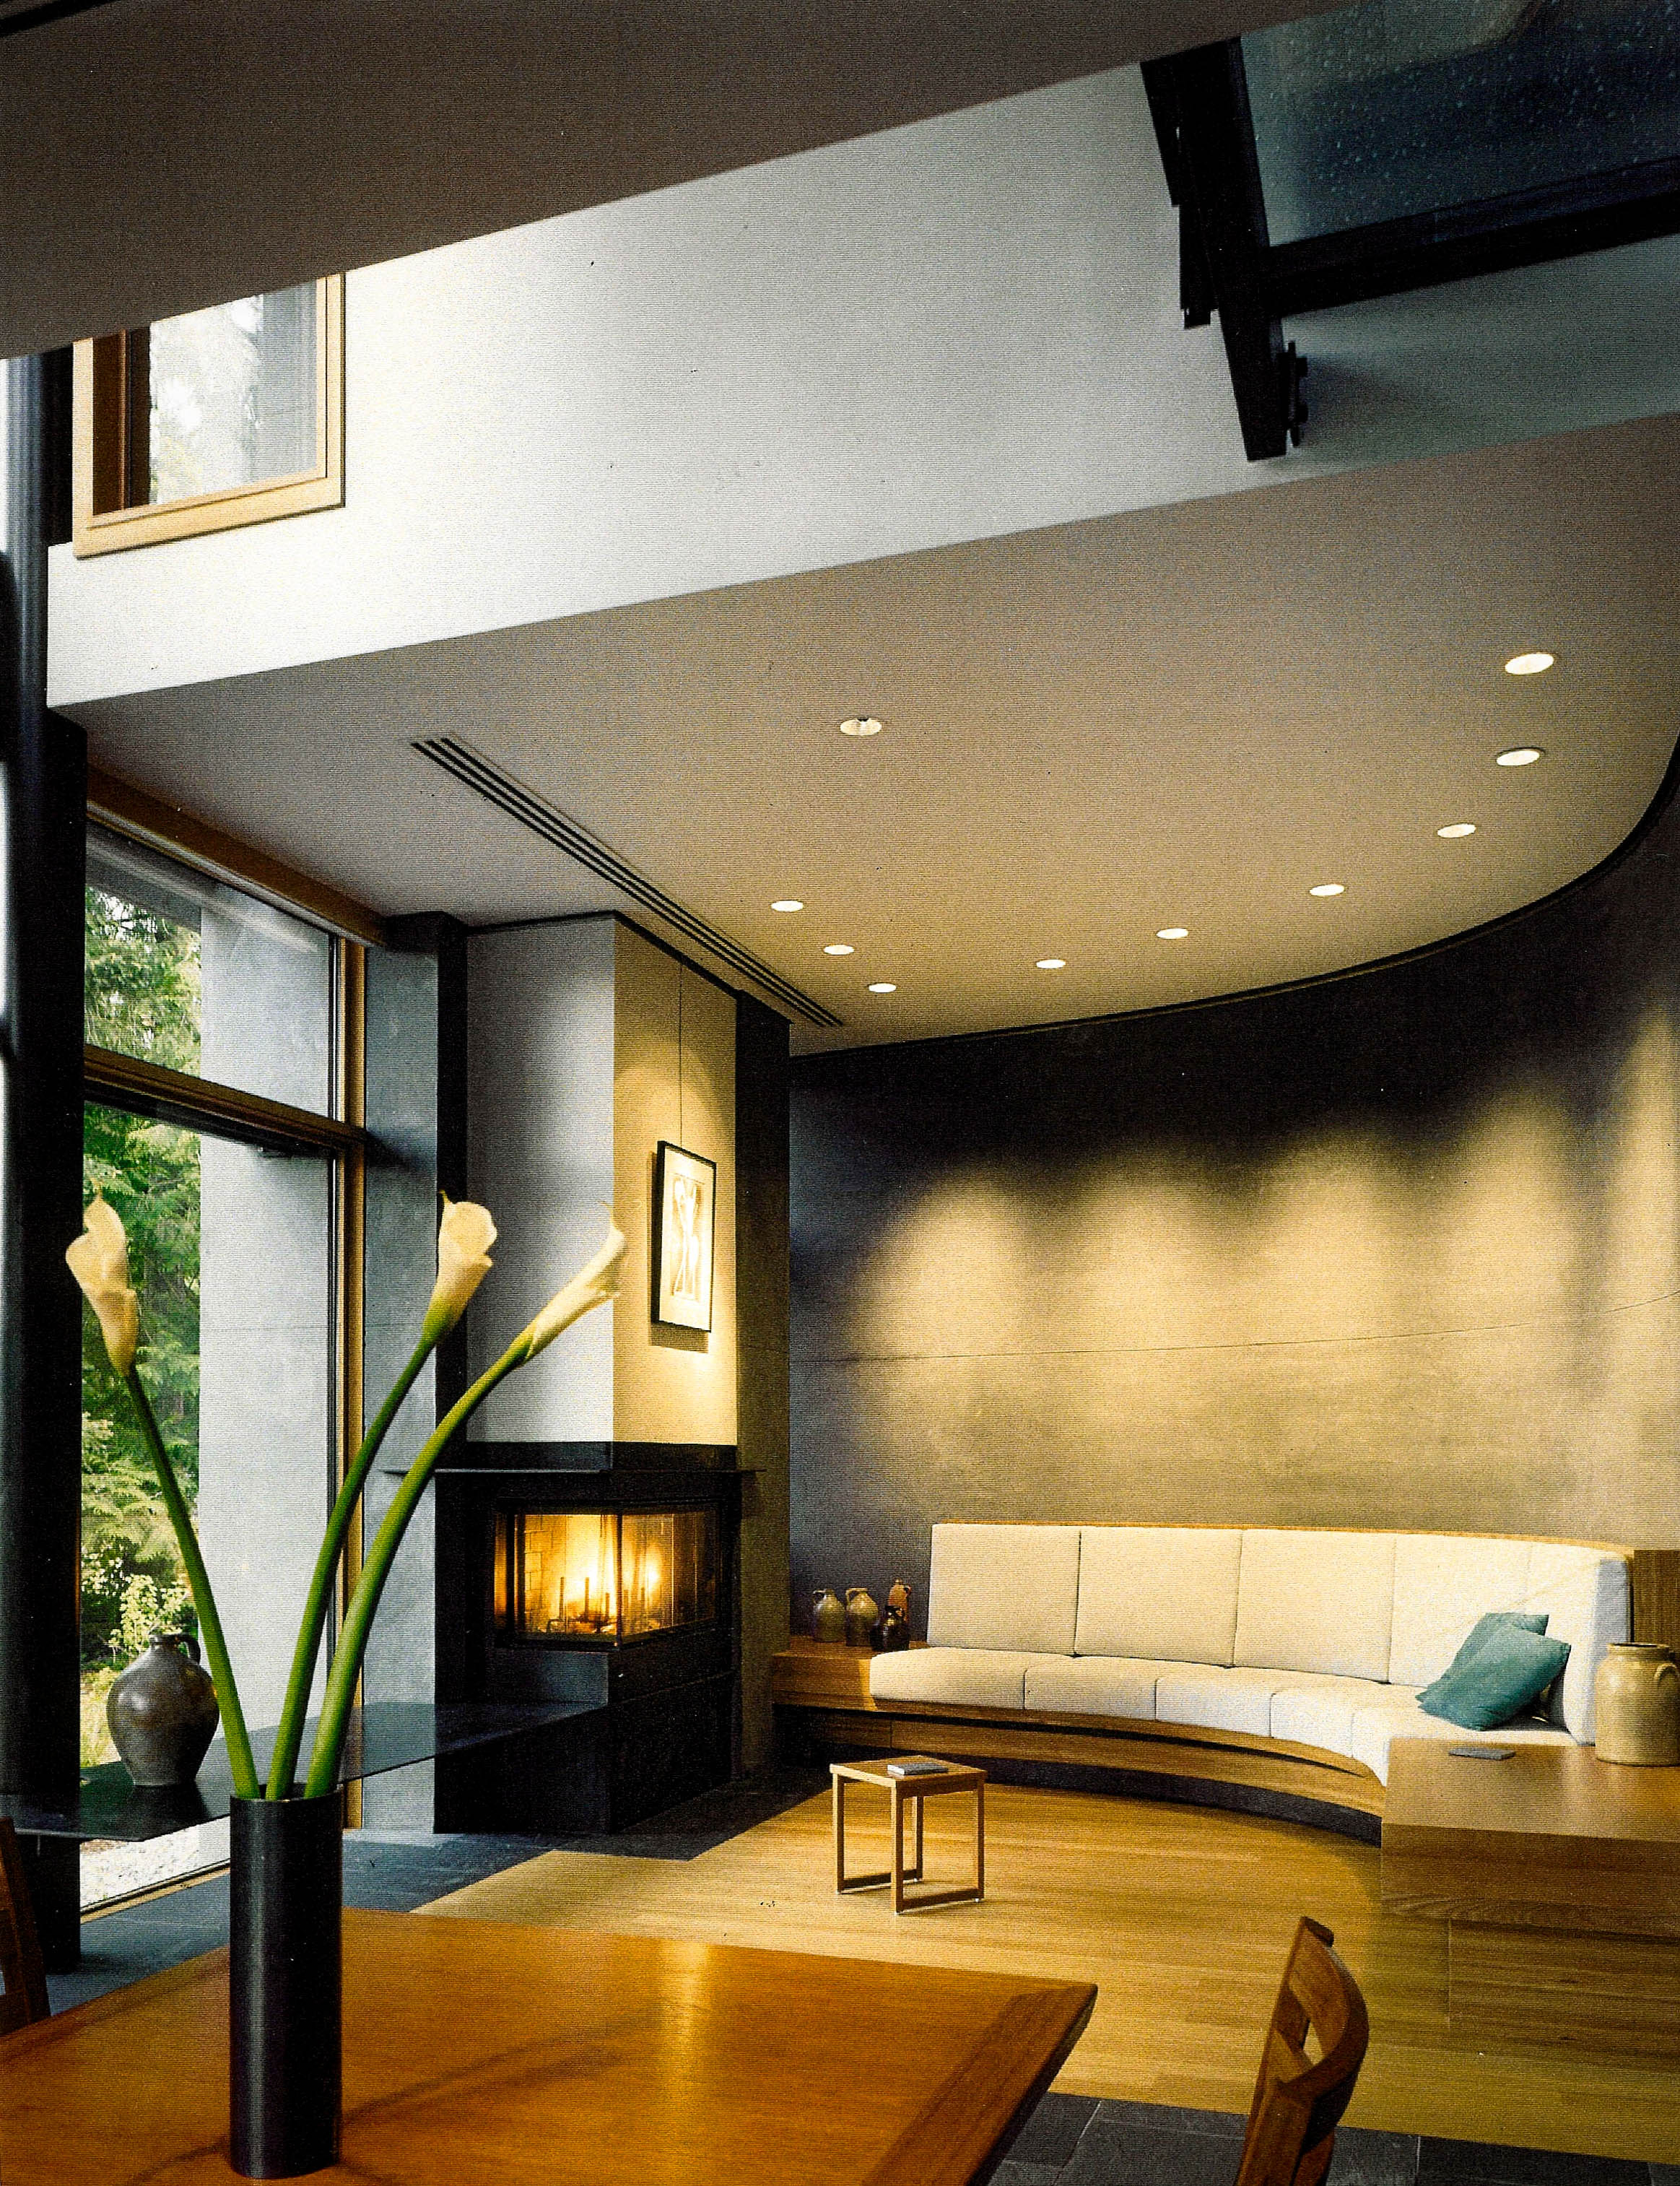 Recessed lighting was designed to highlight the built-in custom designed furniture.